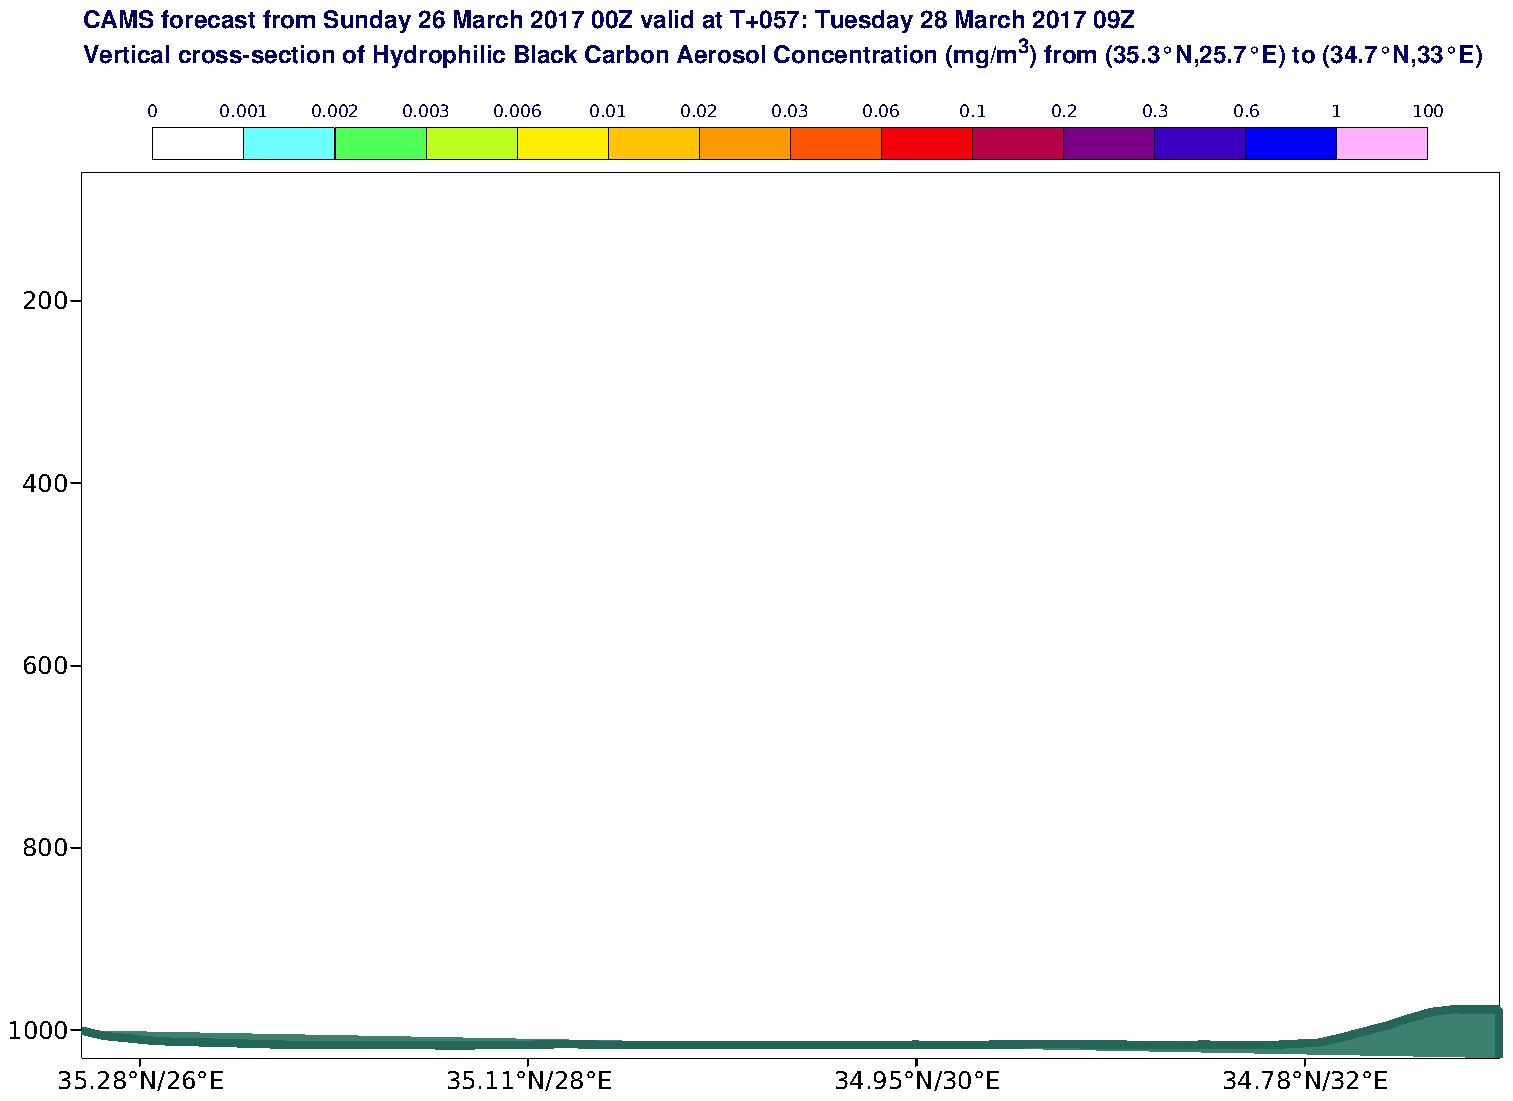 Vertical cross-section of Hydrophilic Black Carbon Aerosol Concentration (mg/m3) valid at T57 - 2017-03-28 09:00